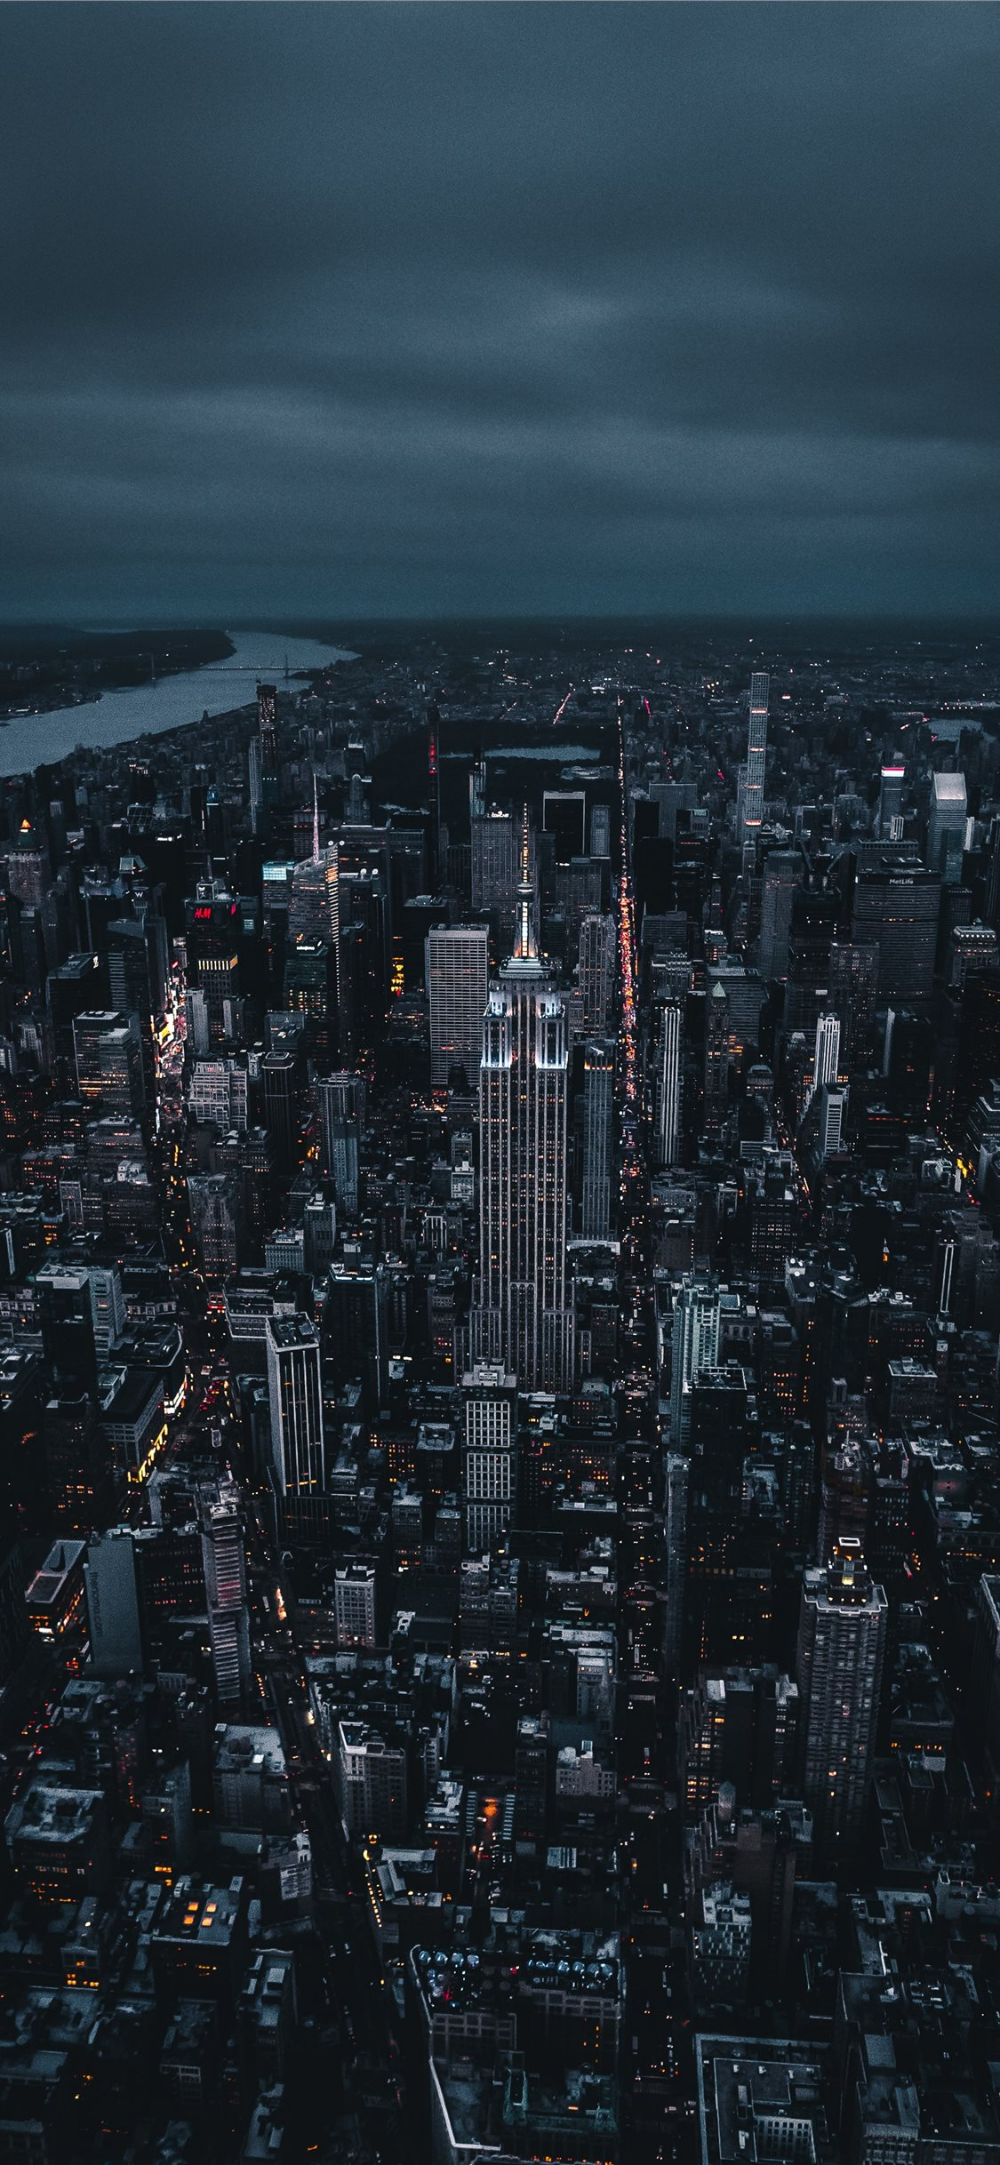 Free Download The Empire State Building Wallpaper Beaty Your Iphone Night Light Sky Skyscra New York Iphone Wallpaper City Wallpaper New York Wallpaper